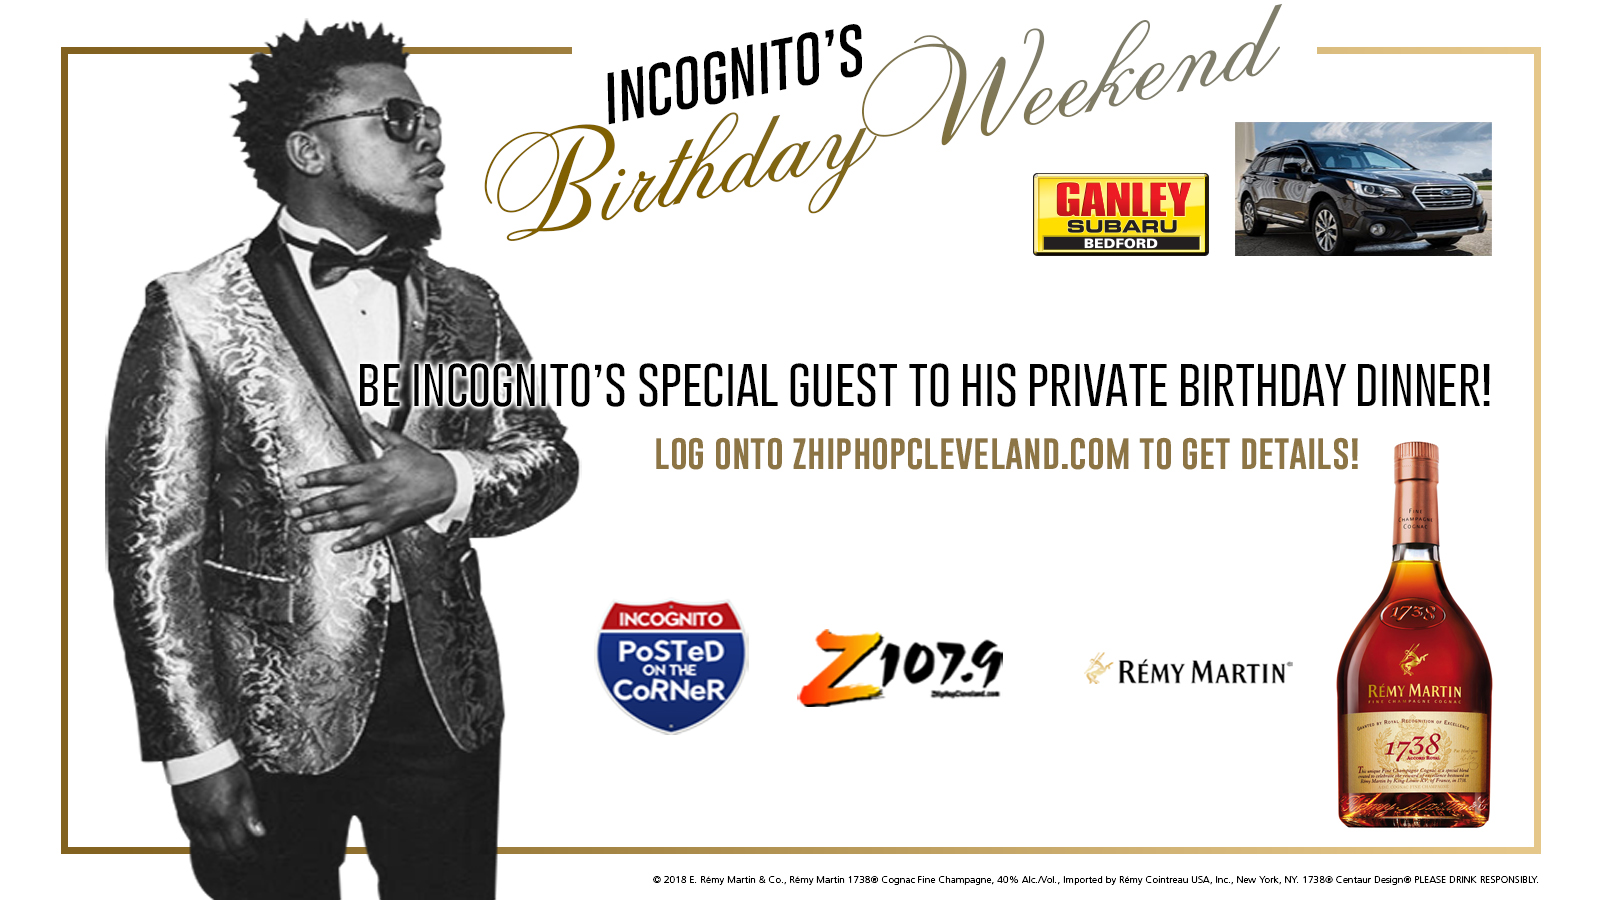 Incognitos Birthday Party Weekend Graphics